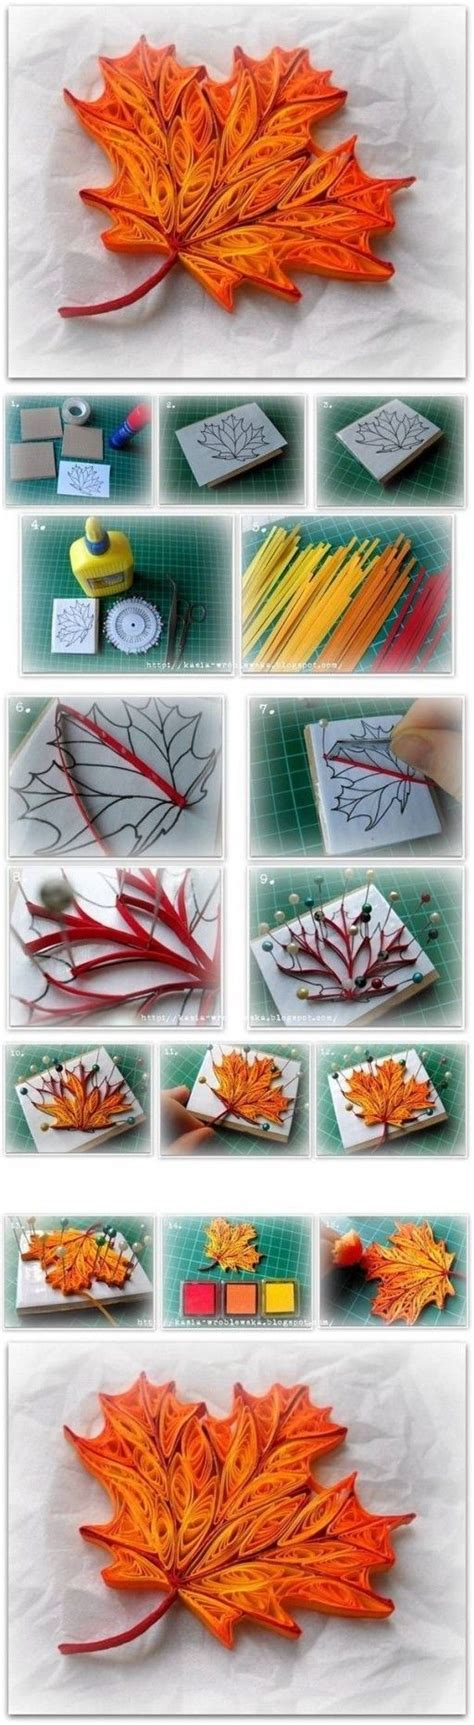 quilling work tutorial how to make quilled maple leaf step by step diy tutorial